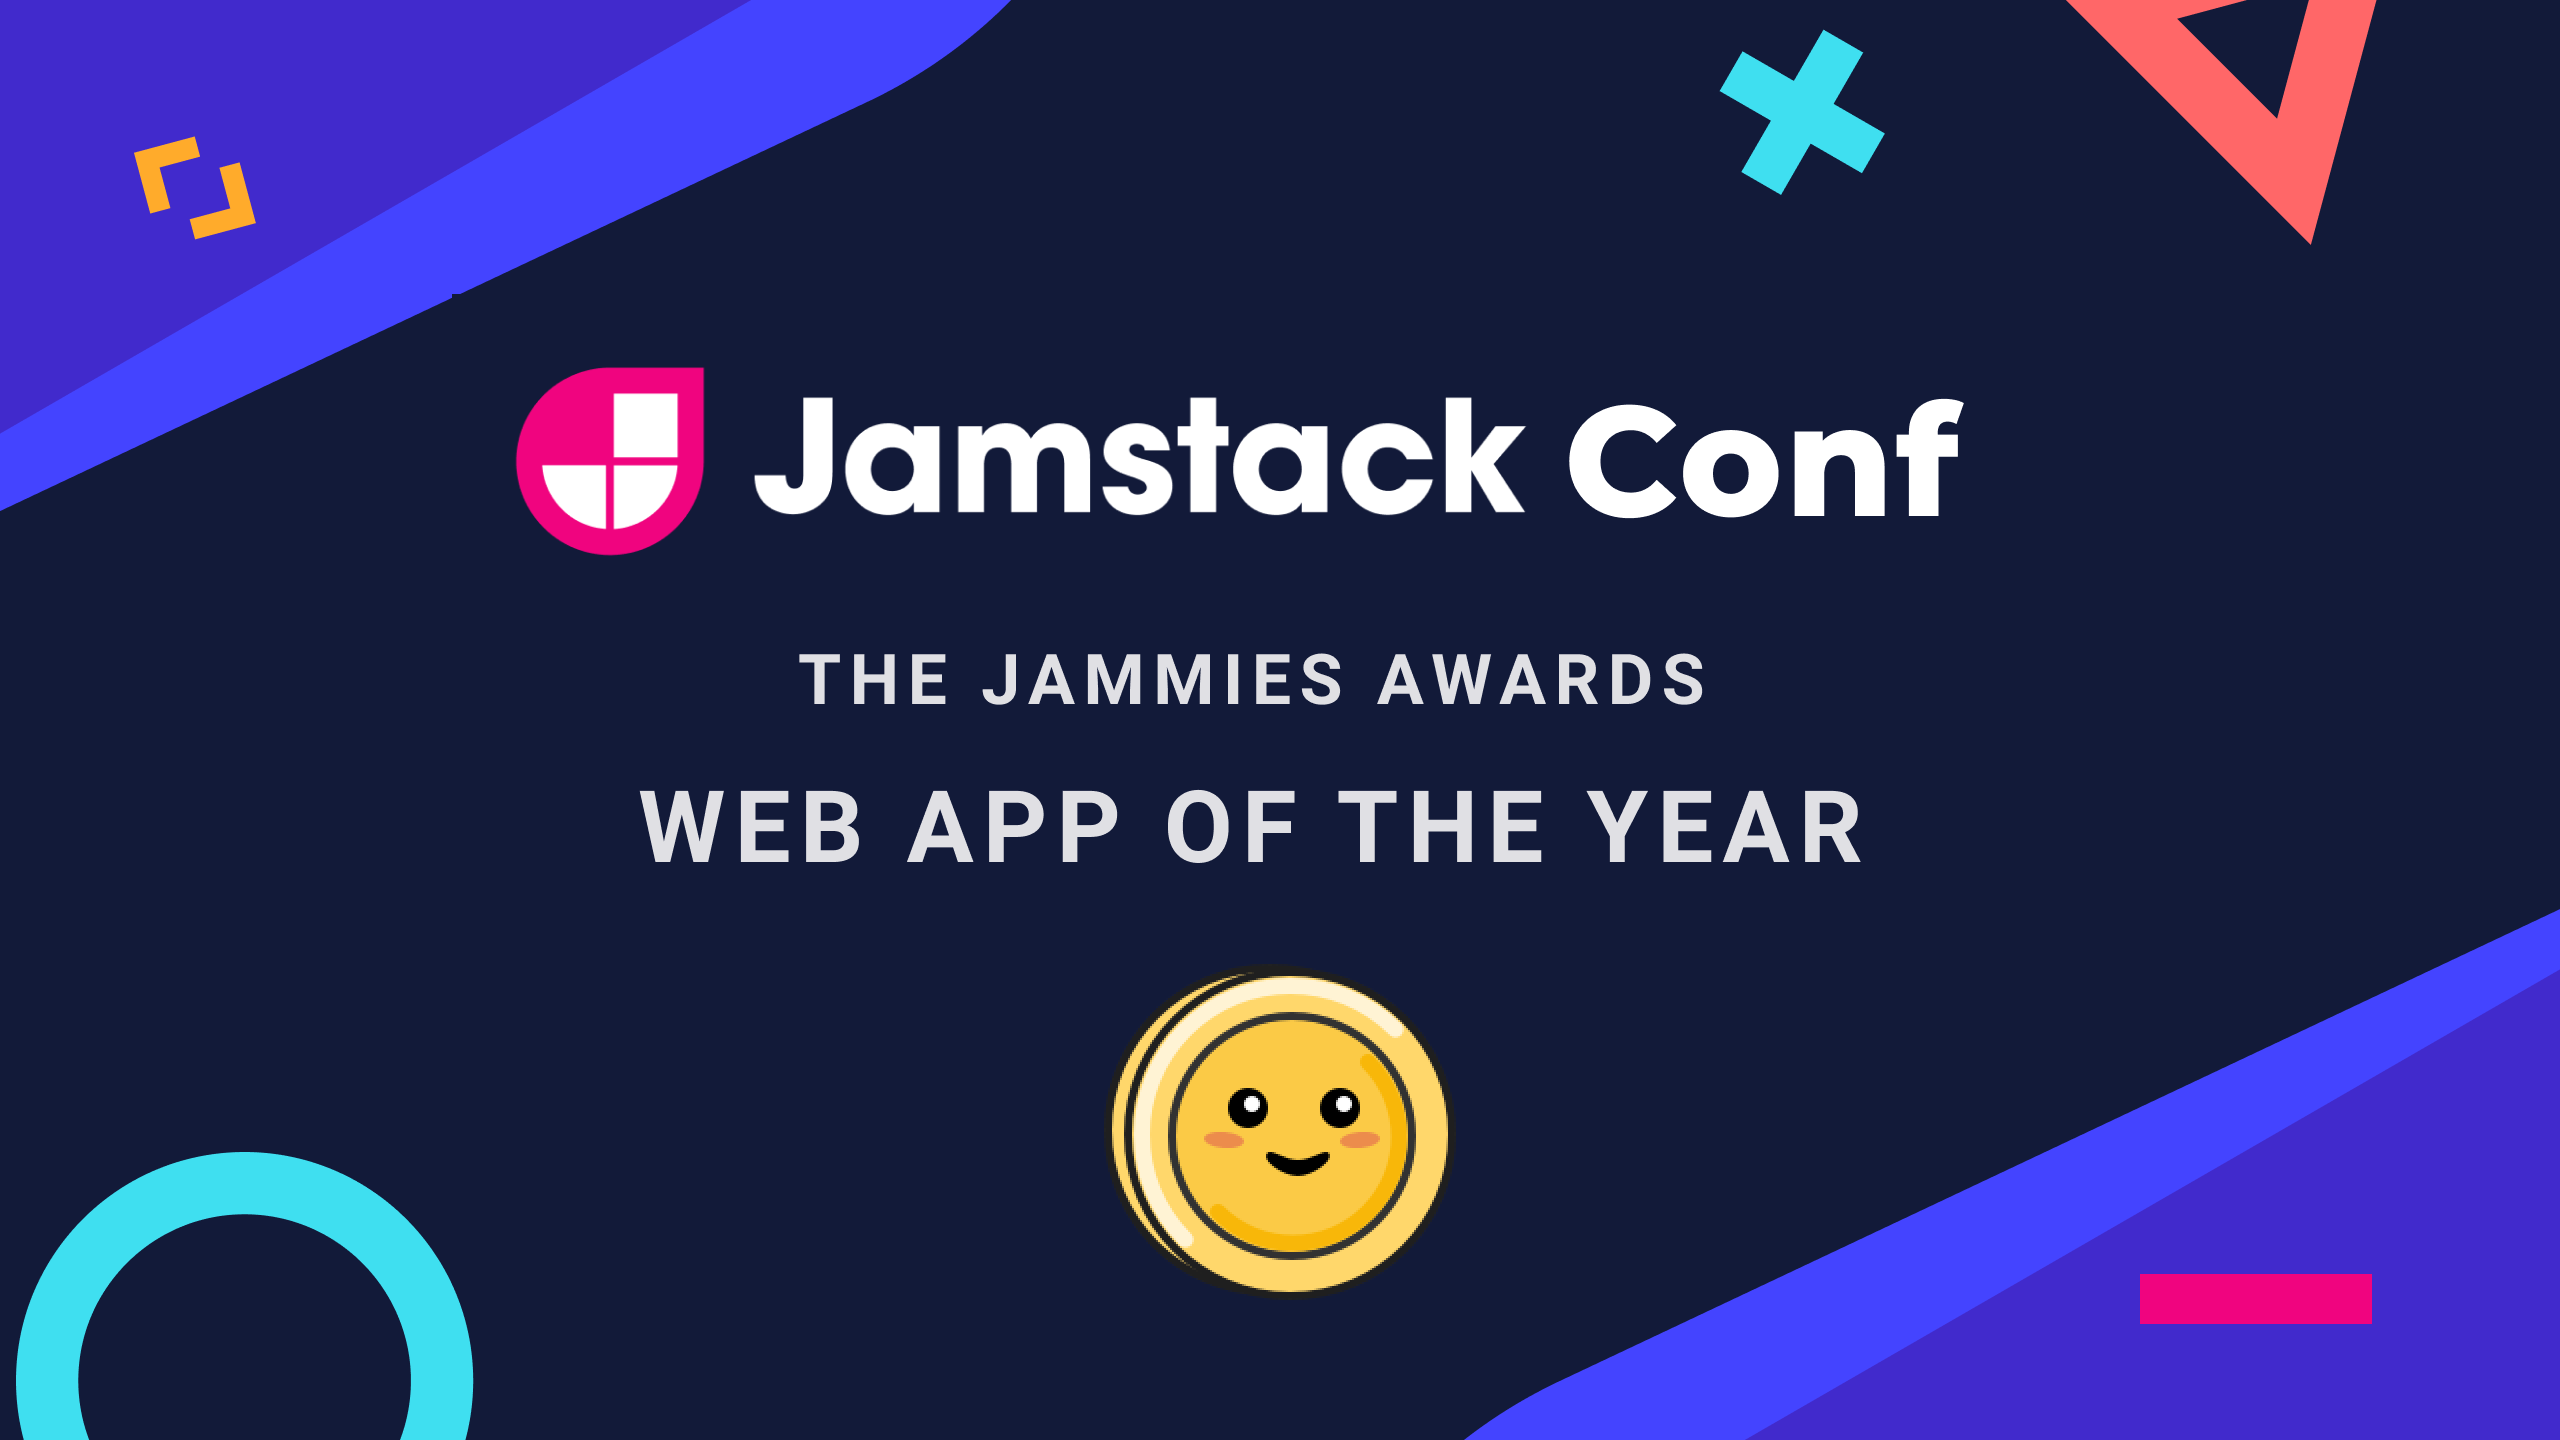 Jamstack Conf web app of the year 2020